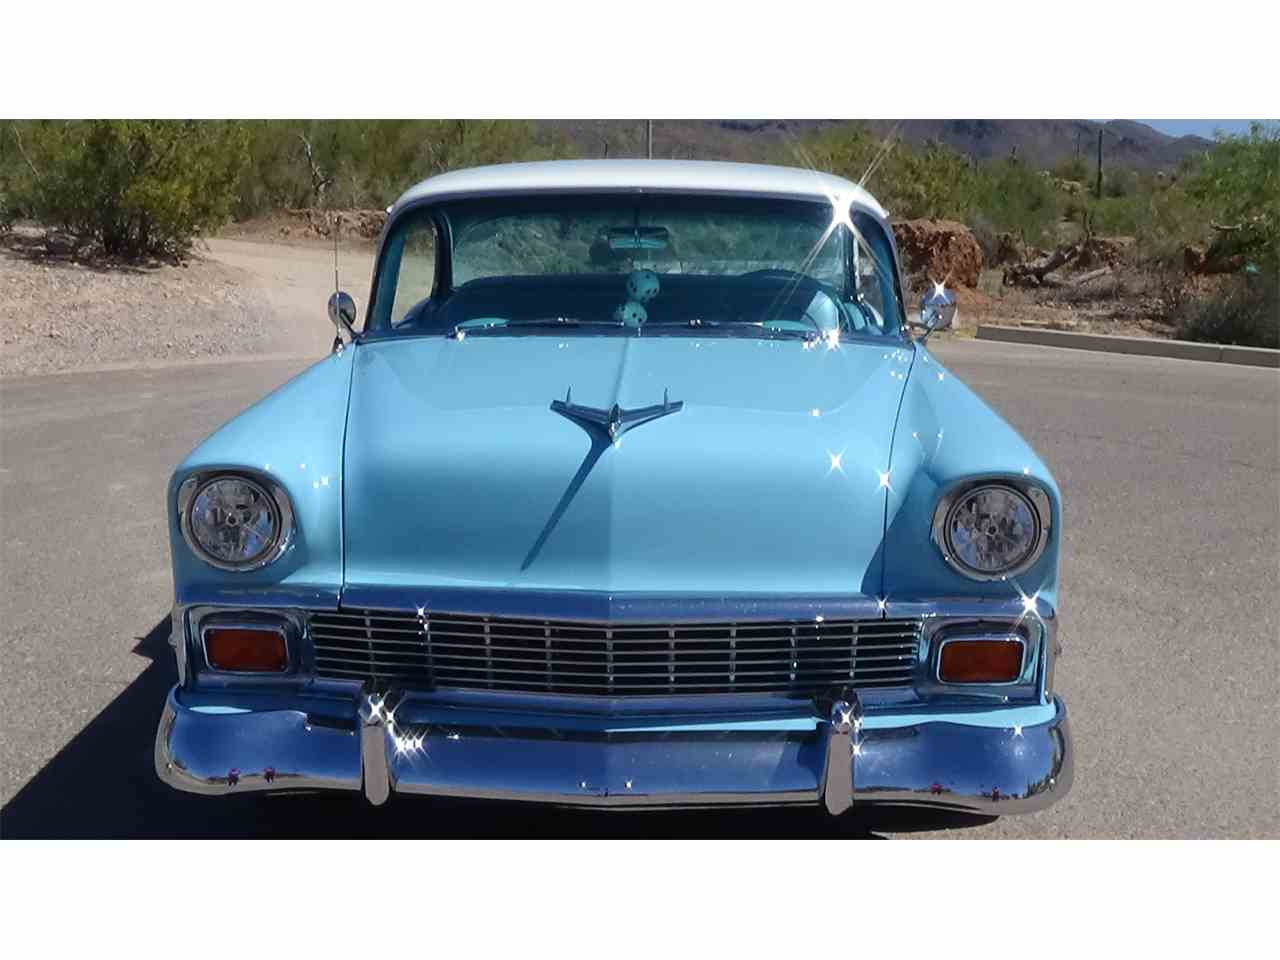 1956 chevrolet bel air for sale classic car liquidators - 1956 Chevrolet Bel Air For Sale Cc 801402